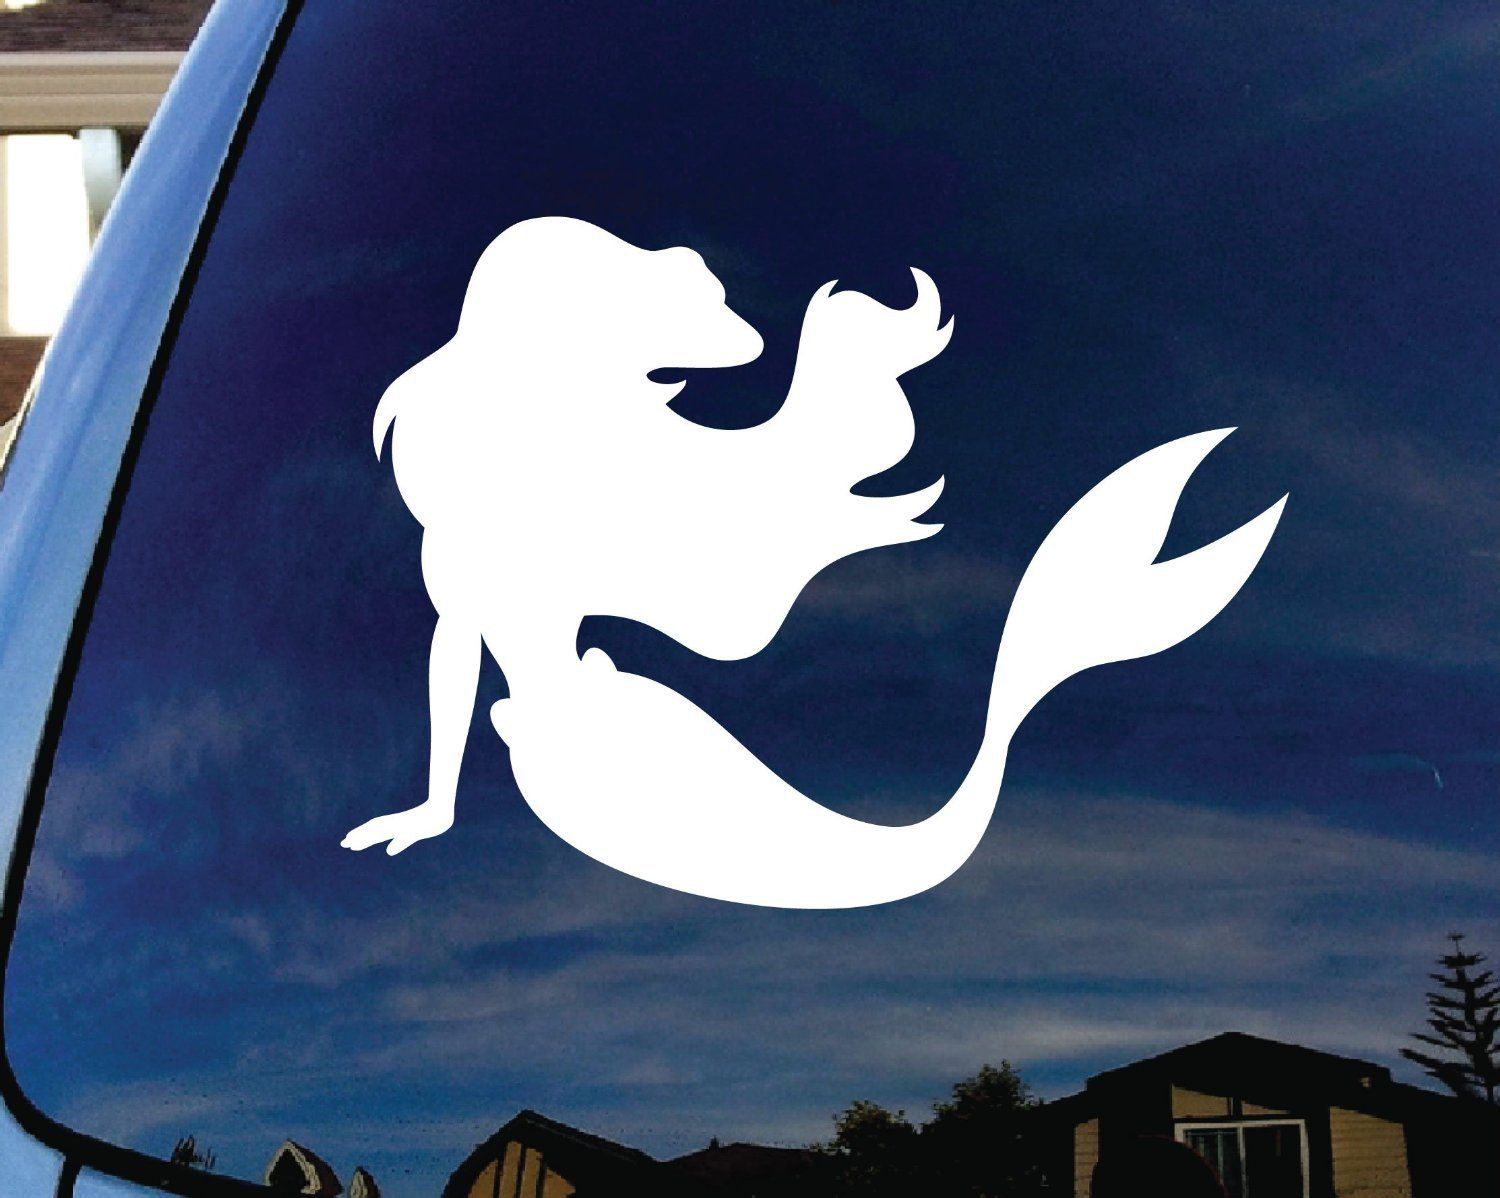 Moganhorses Save Of Little Mermaid Ariel Car Window Vinyl Decal - Mermaid custom vinyl decals for car